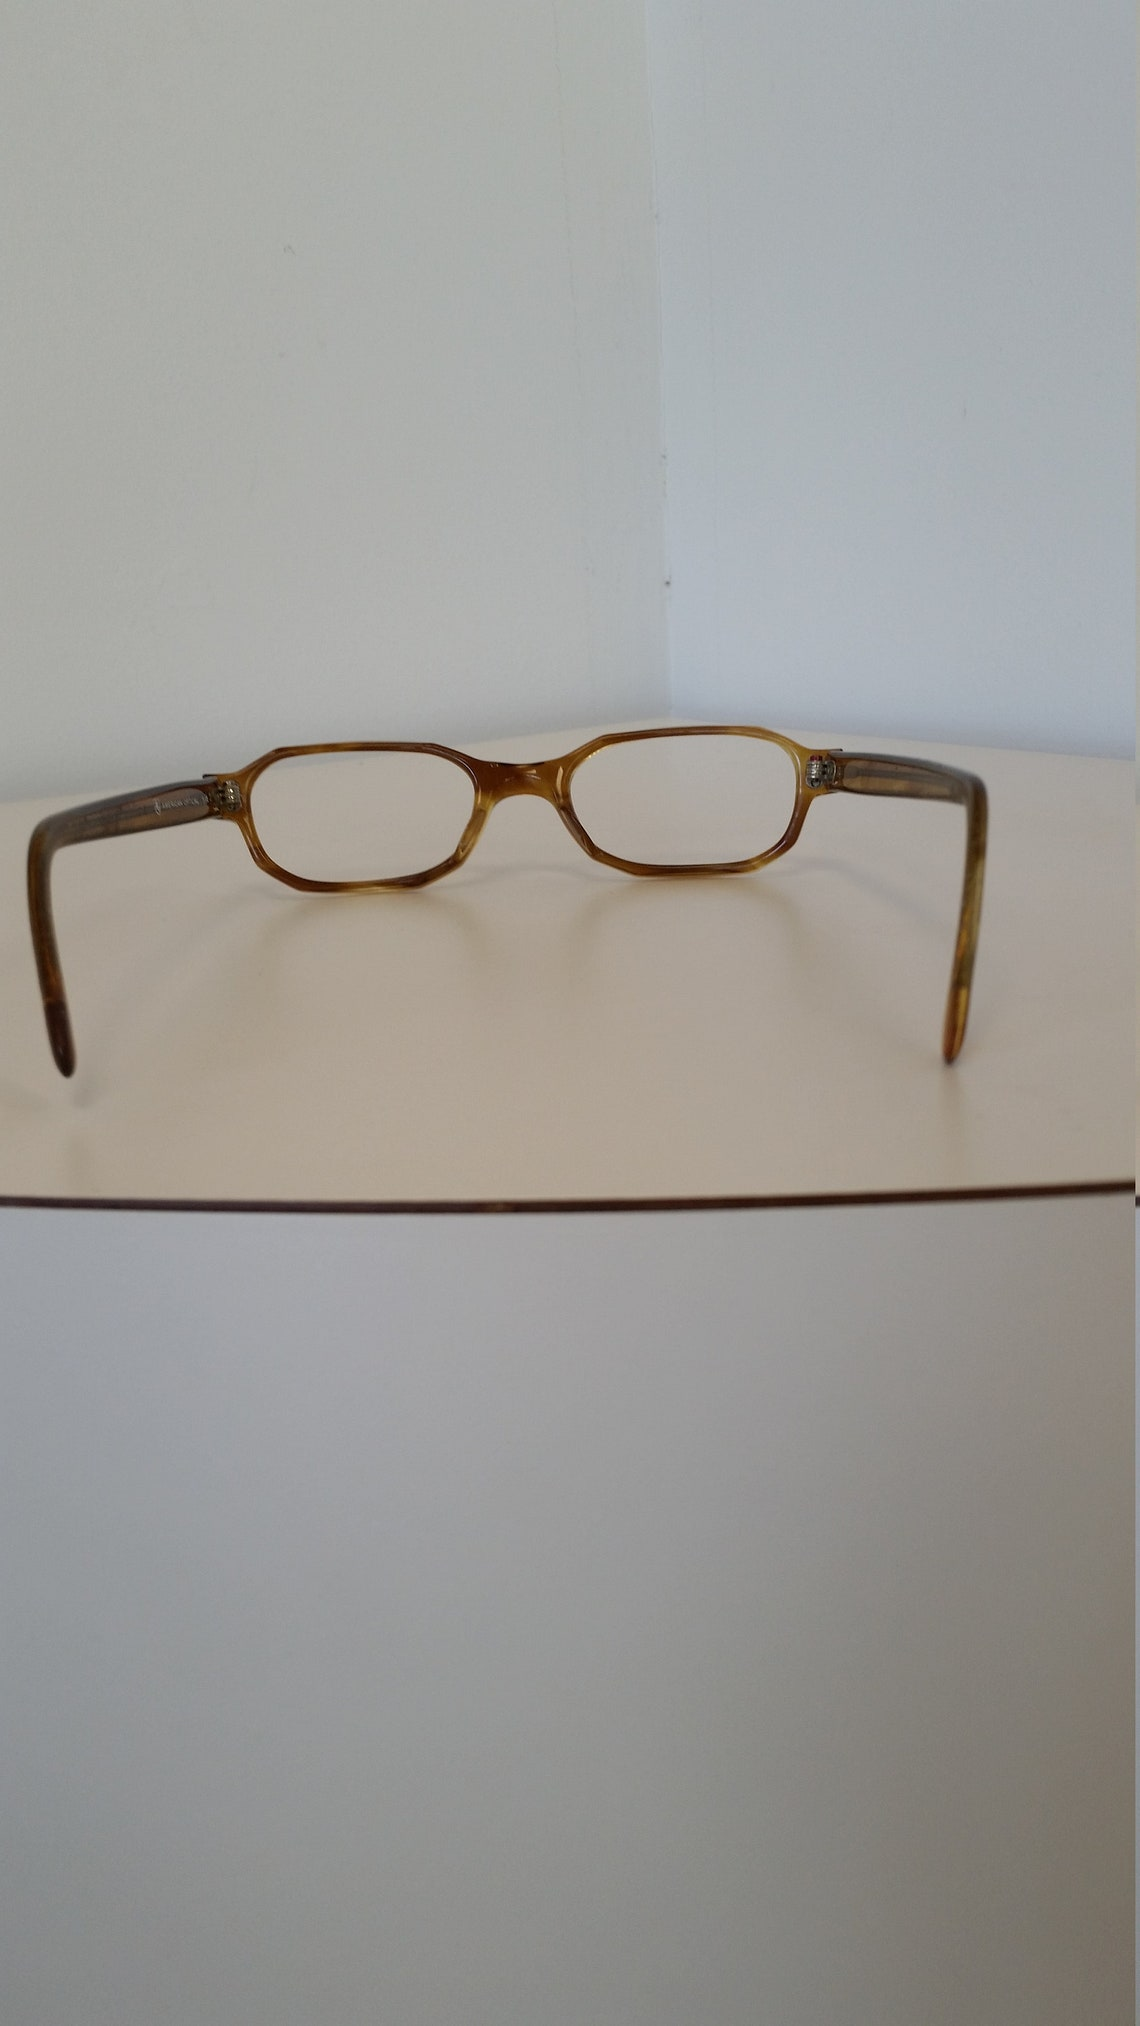 1960s American Optical Eyeglasses Frame; Faux Tortoise Brown; Very Good Condition; No Lenses; Rx-able; Vintage Hipster